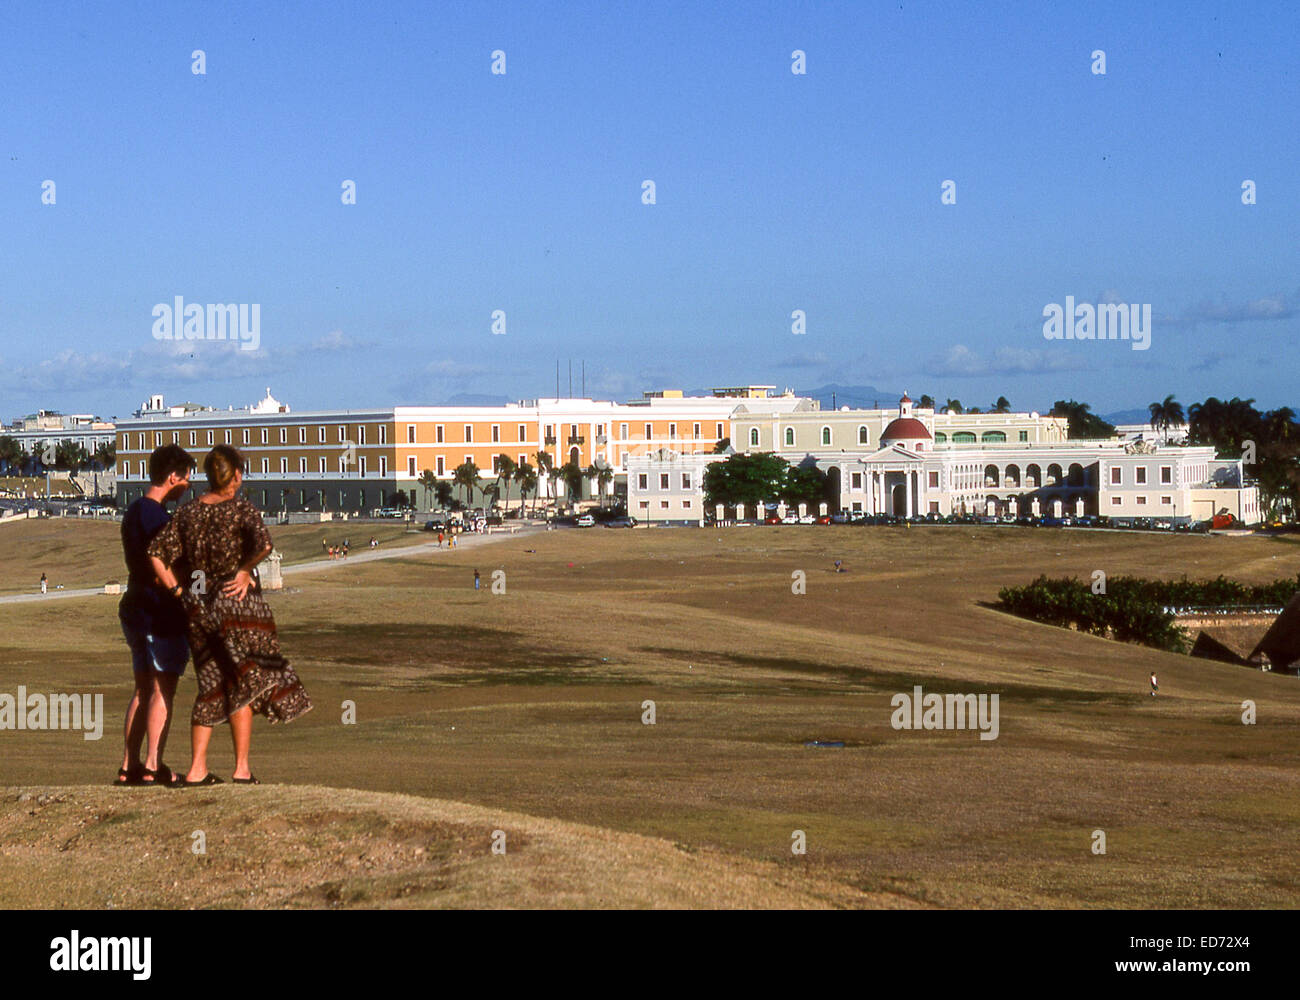 April 3, 2001 - San Juan, Puerto Rico, US - Tourists on a rise of the large esplanade of the famed Castillo San - Stock Image